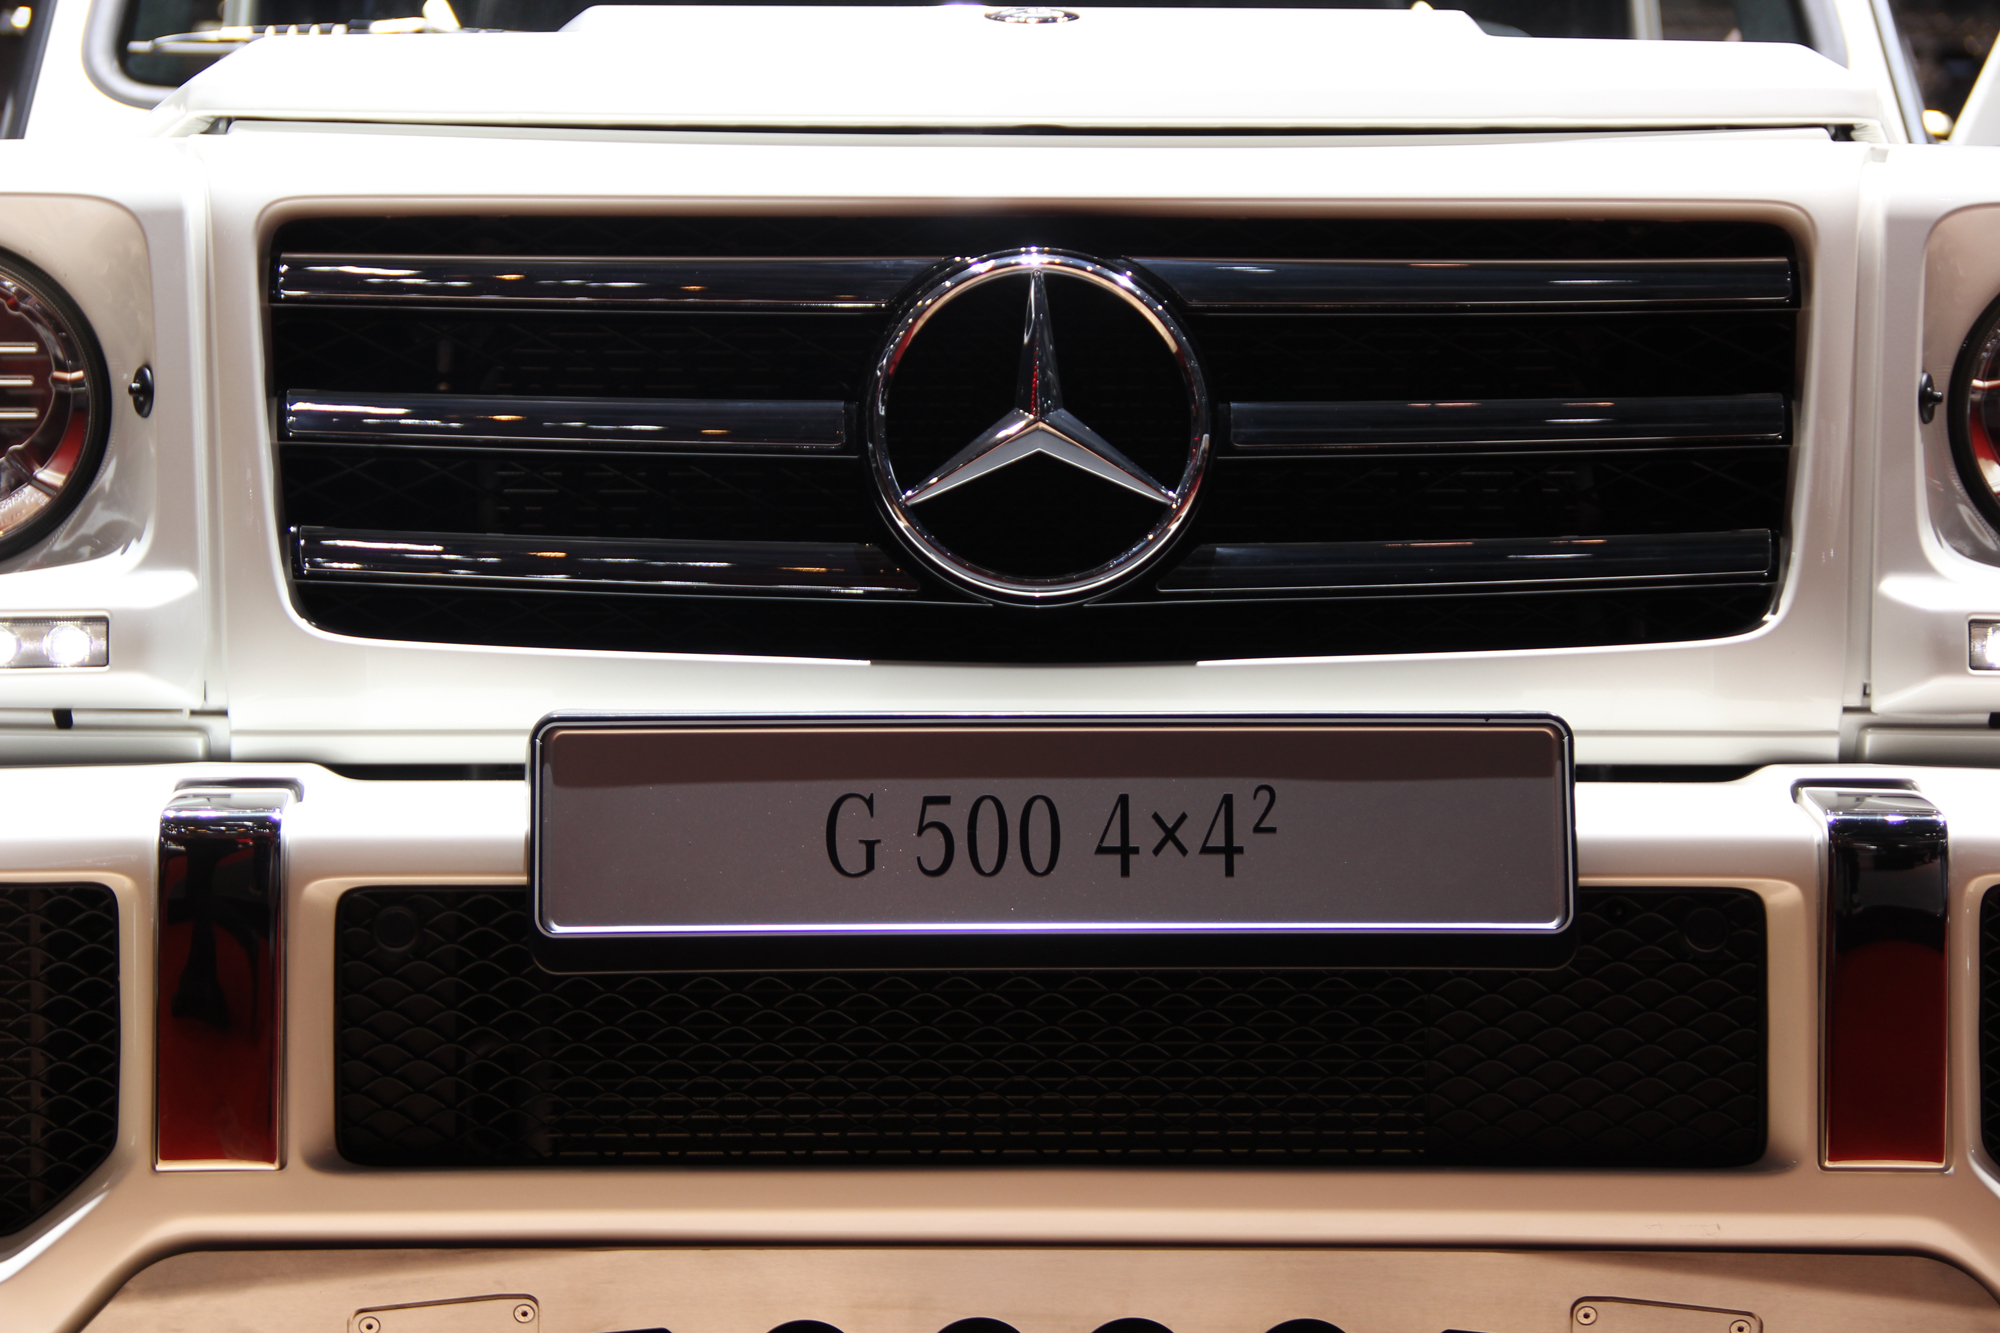 Bonkers Mercedes G500 4x4 Squared Off-Roader Could Head to the US